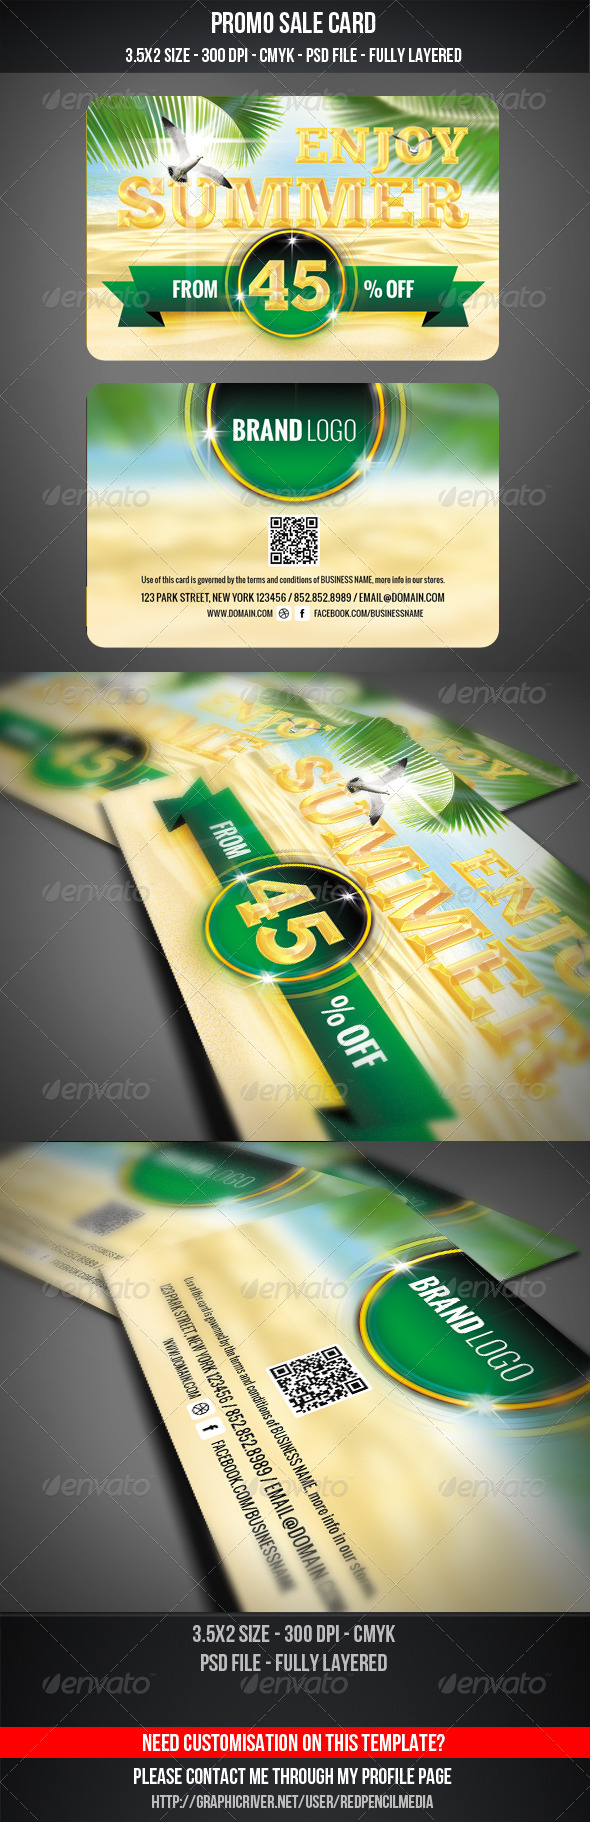 Summer Sale Card by REDPENCILMEDIA   GraphicRiver